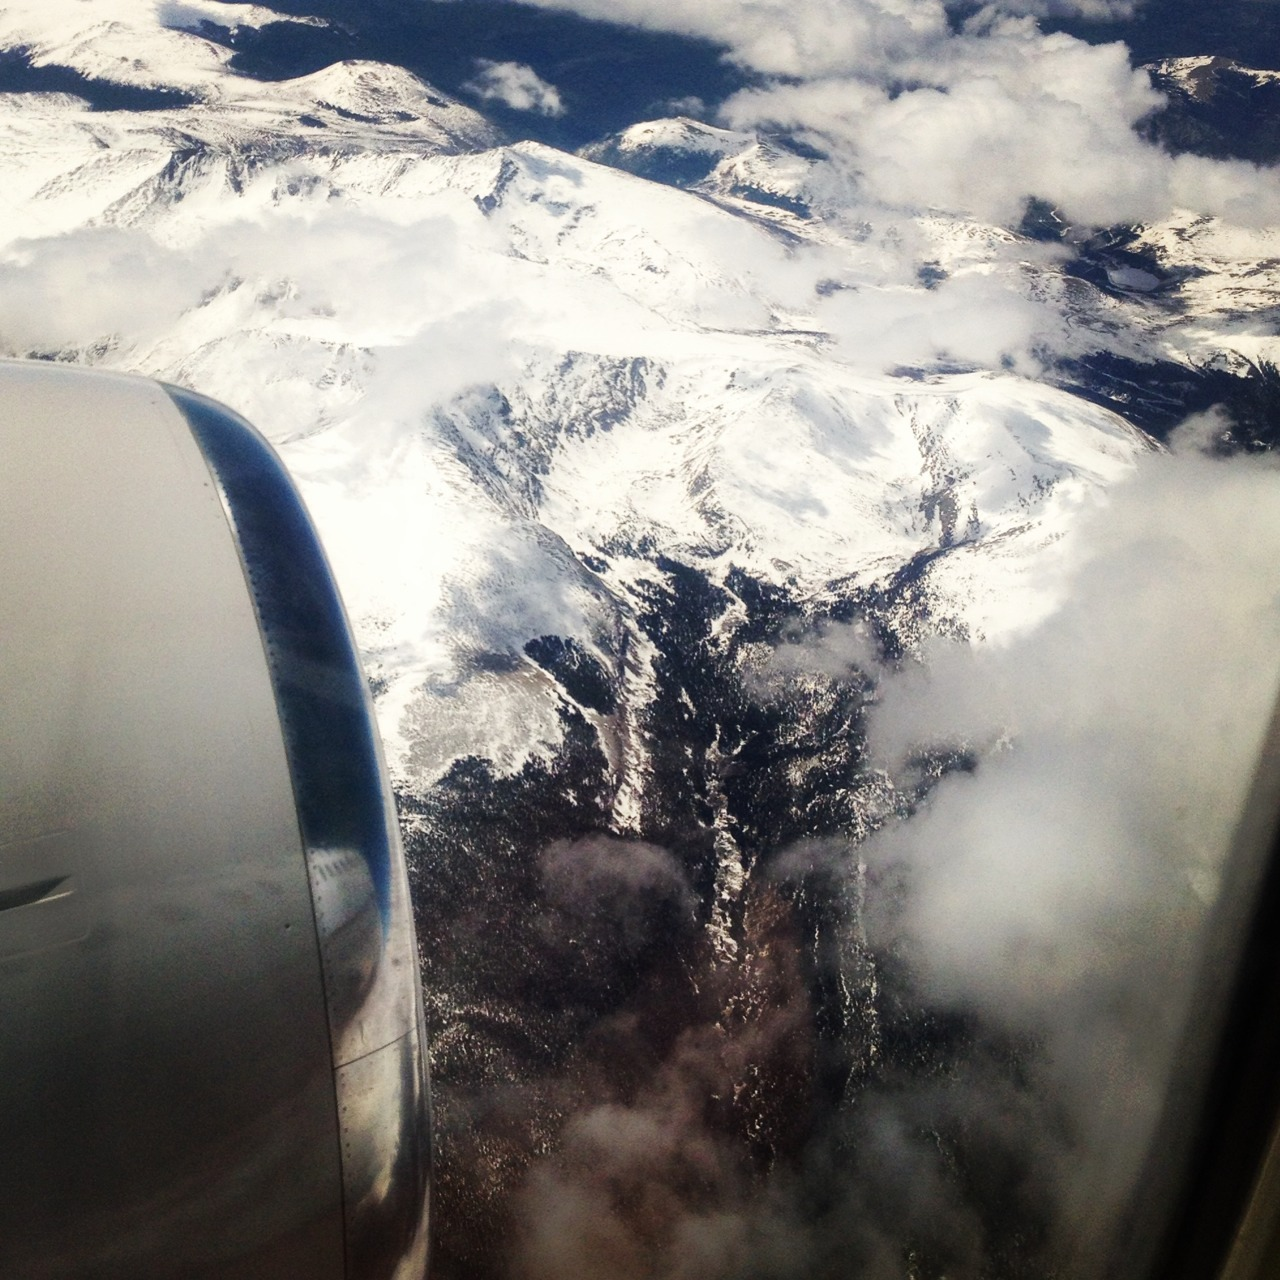 #snowcapped #mountains somewhere over #colorado